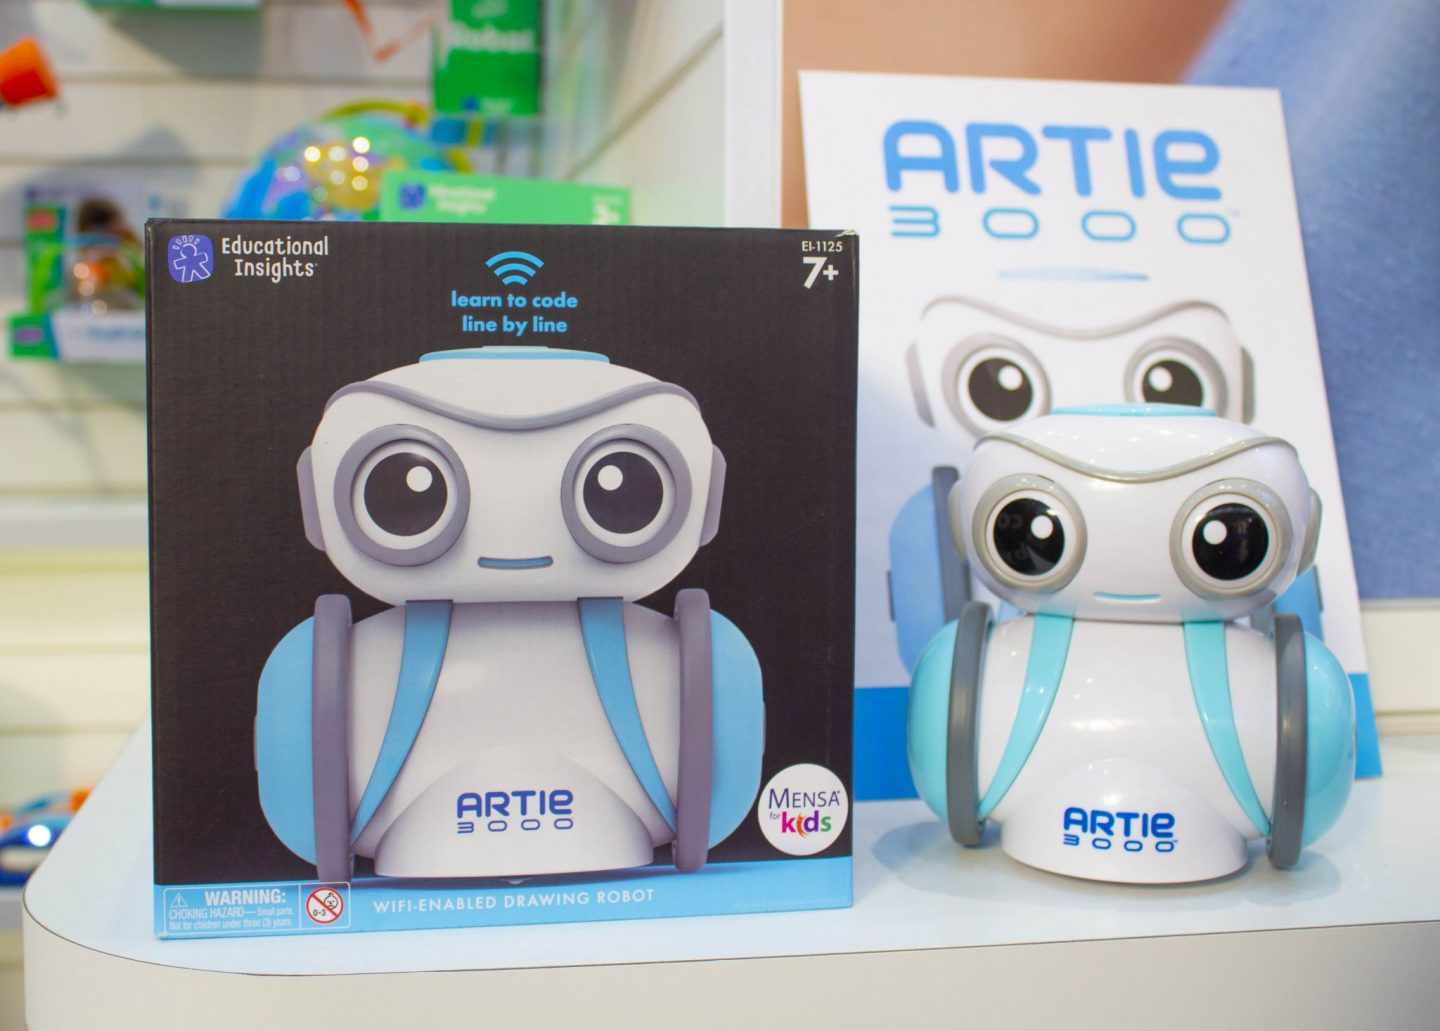 Artie, Learning Resources, coding robot, coding toy, The Toy Fair, Toy Fair 2019, The Toy Fair 2019, Microscooters, dadbloguk, dad blog uk, dadbloguk.com, school run dad, sahd, wahd toys, gifts